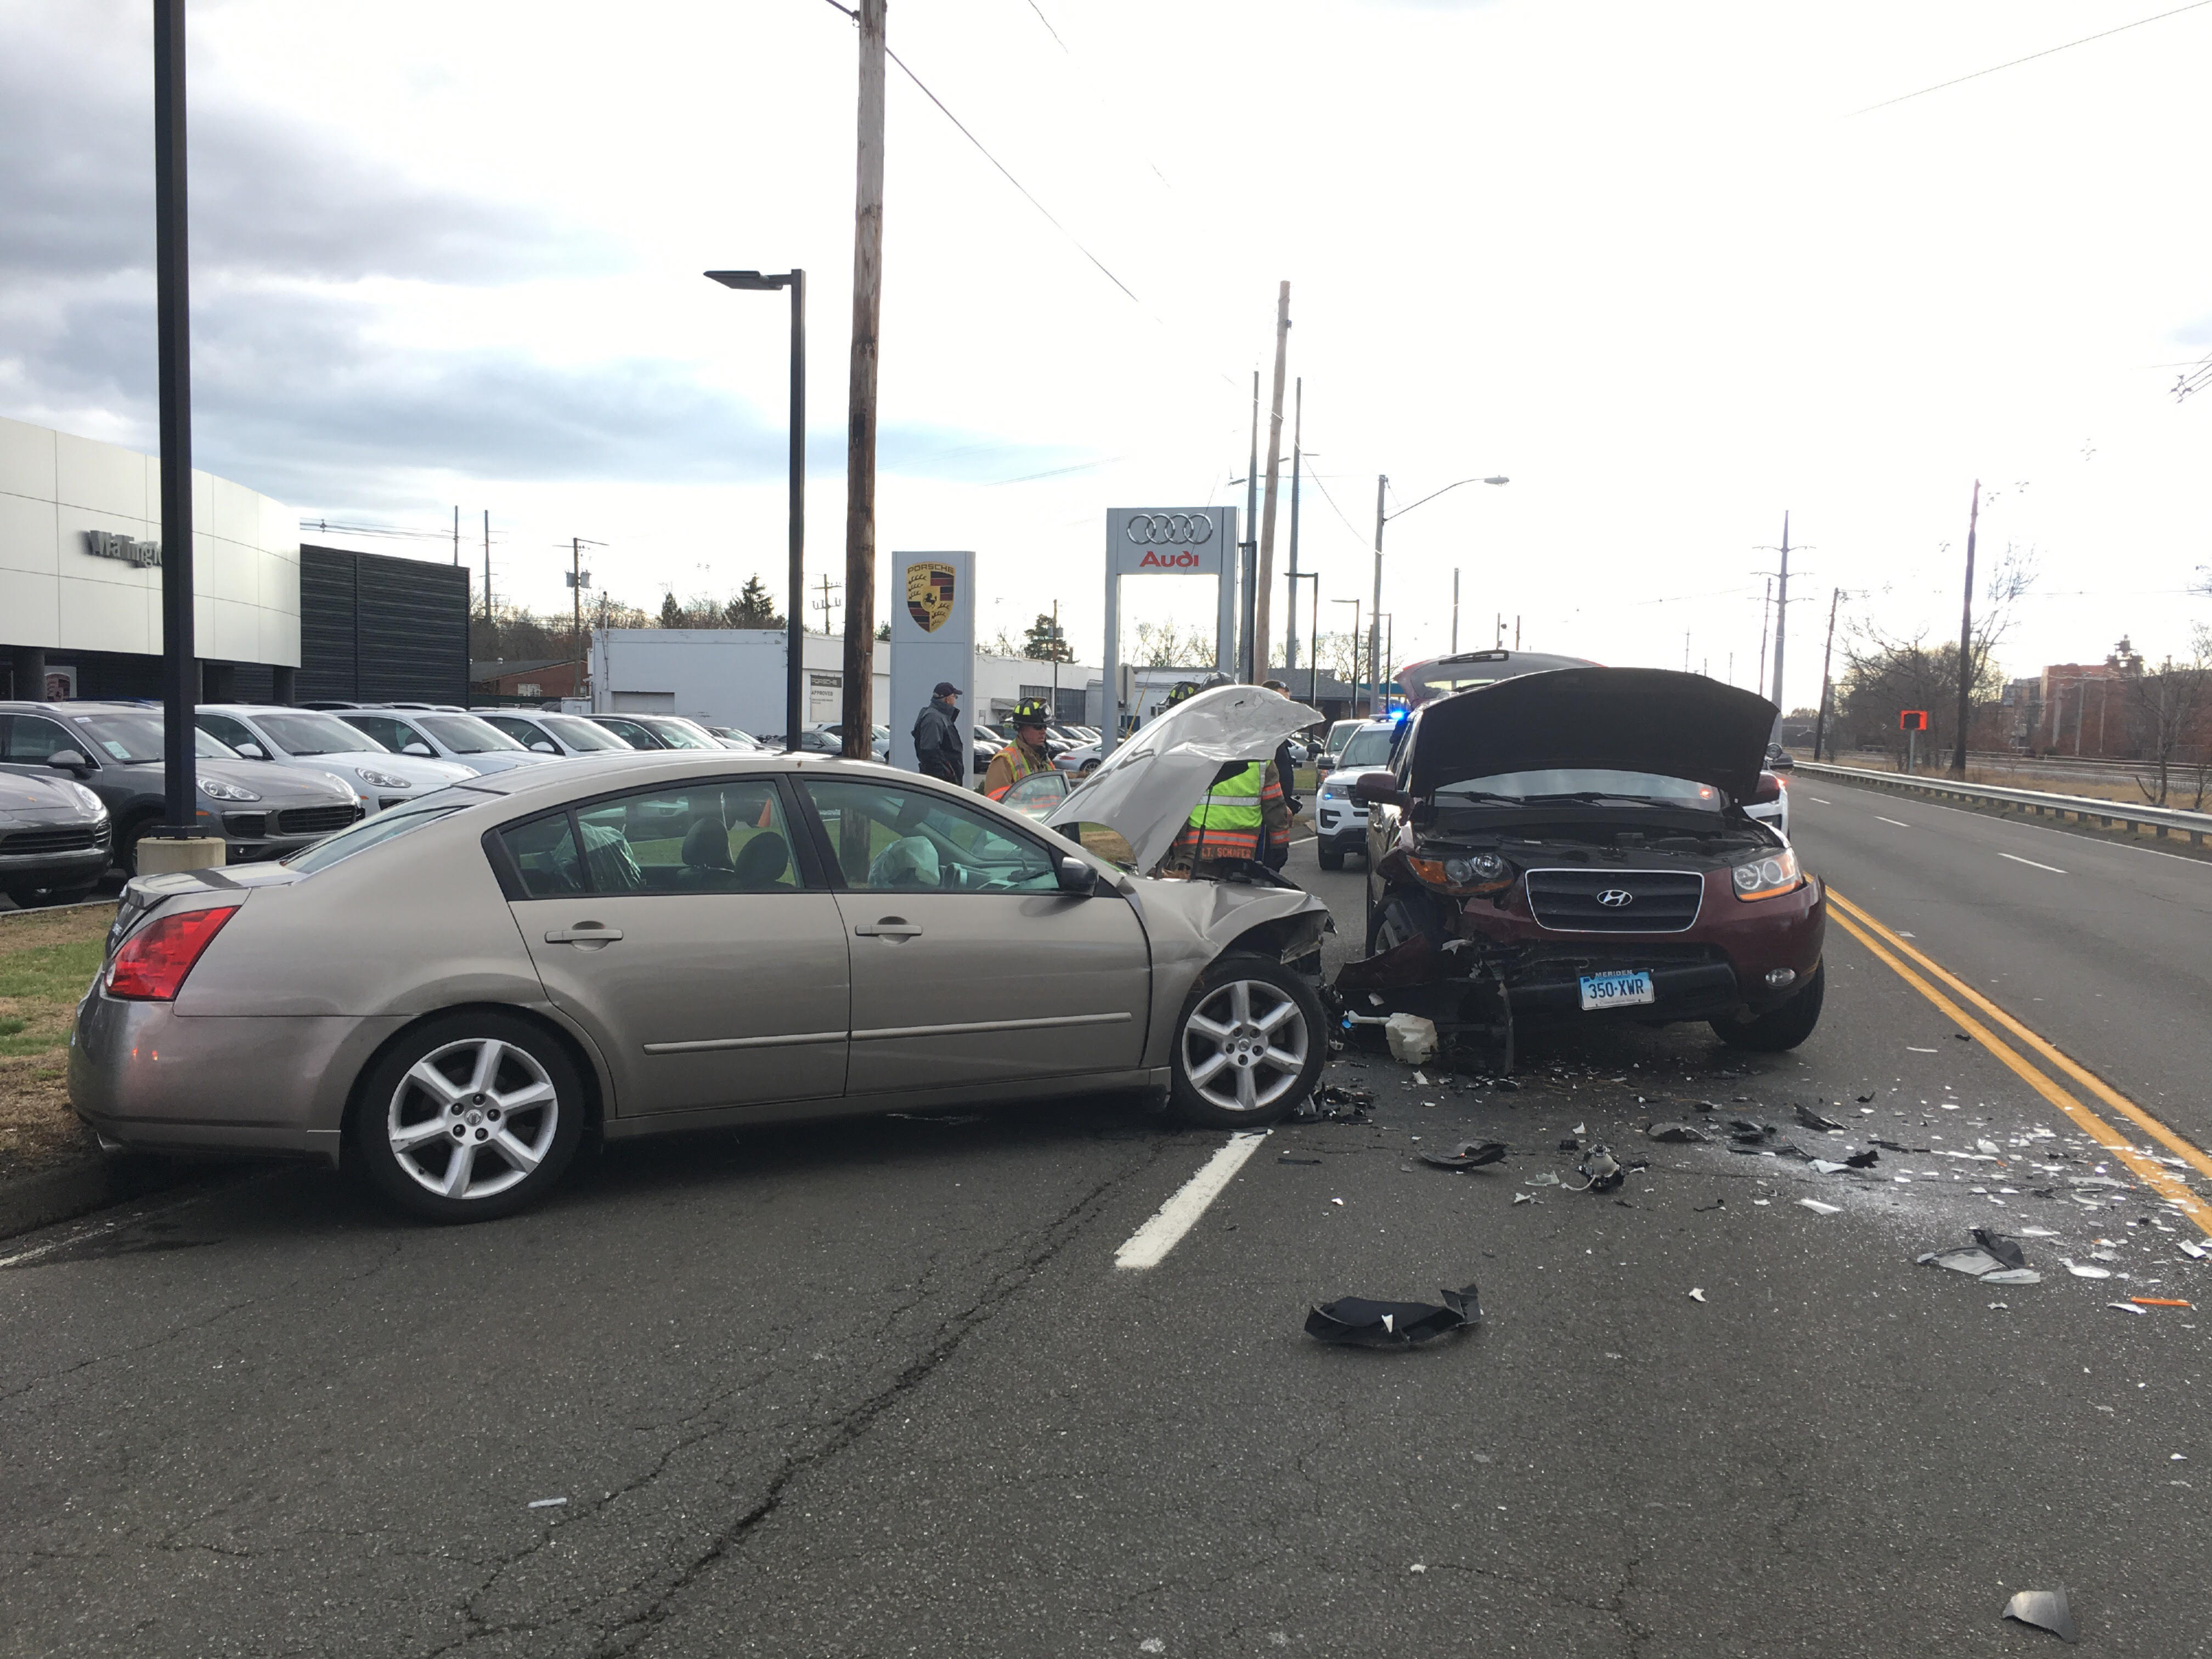 Two cars collided on South Colony Road in Wallingford Thursday afternoon. | Lauren Takores, Record-Journal